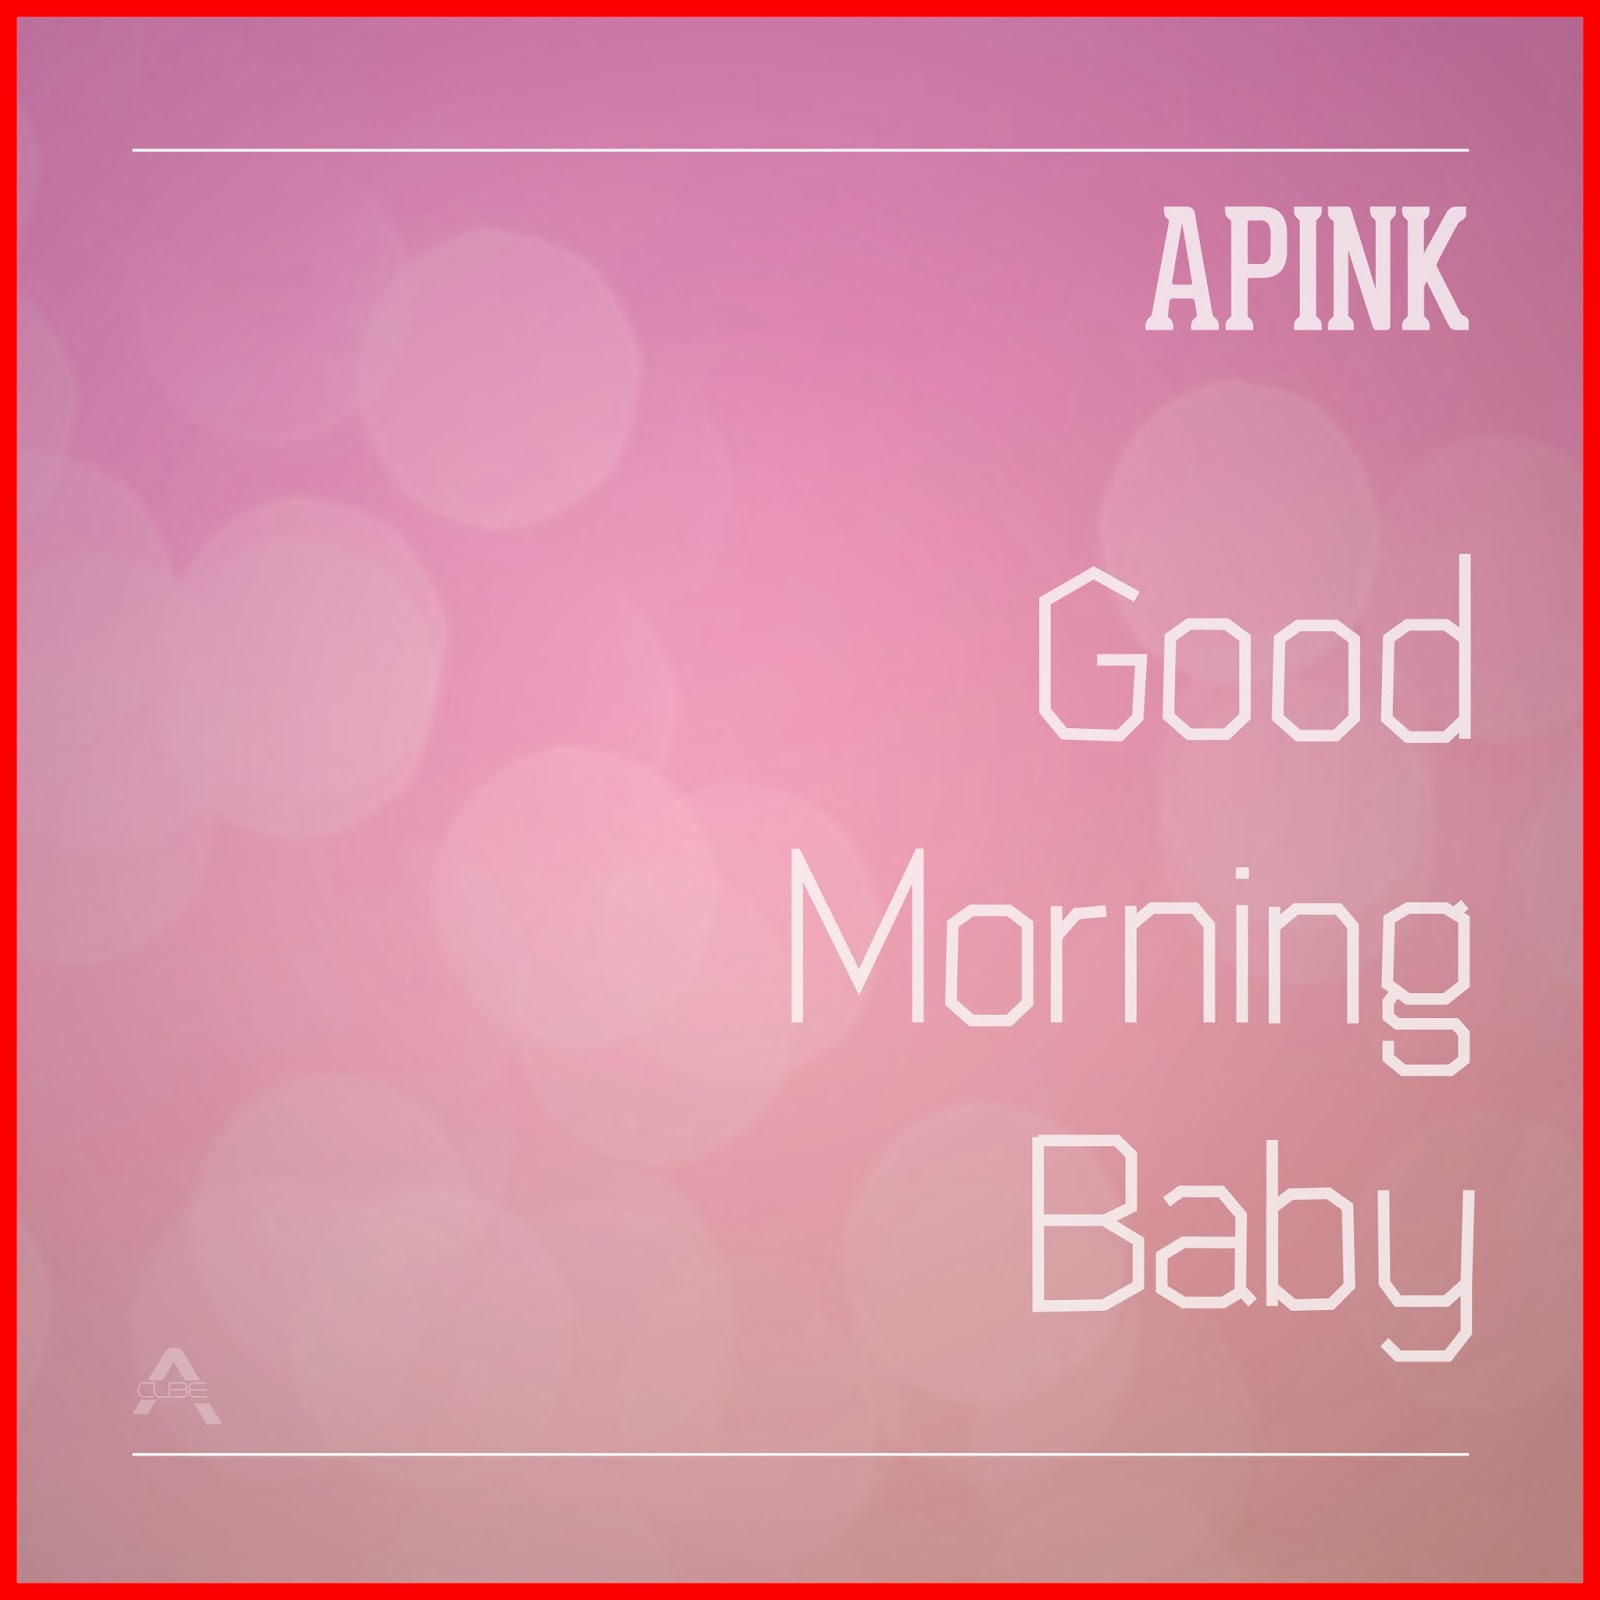 Good Morning My Dear In Korean Language : K poppo a pink good morning baby full album download